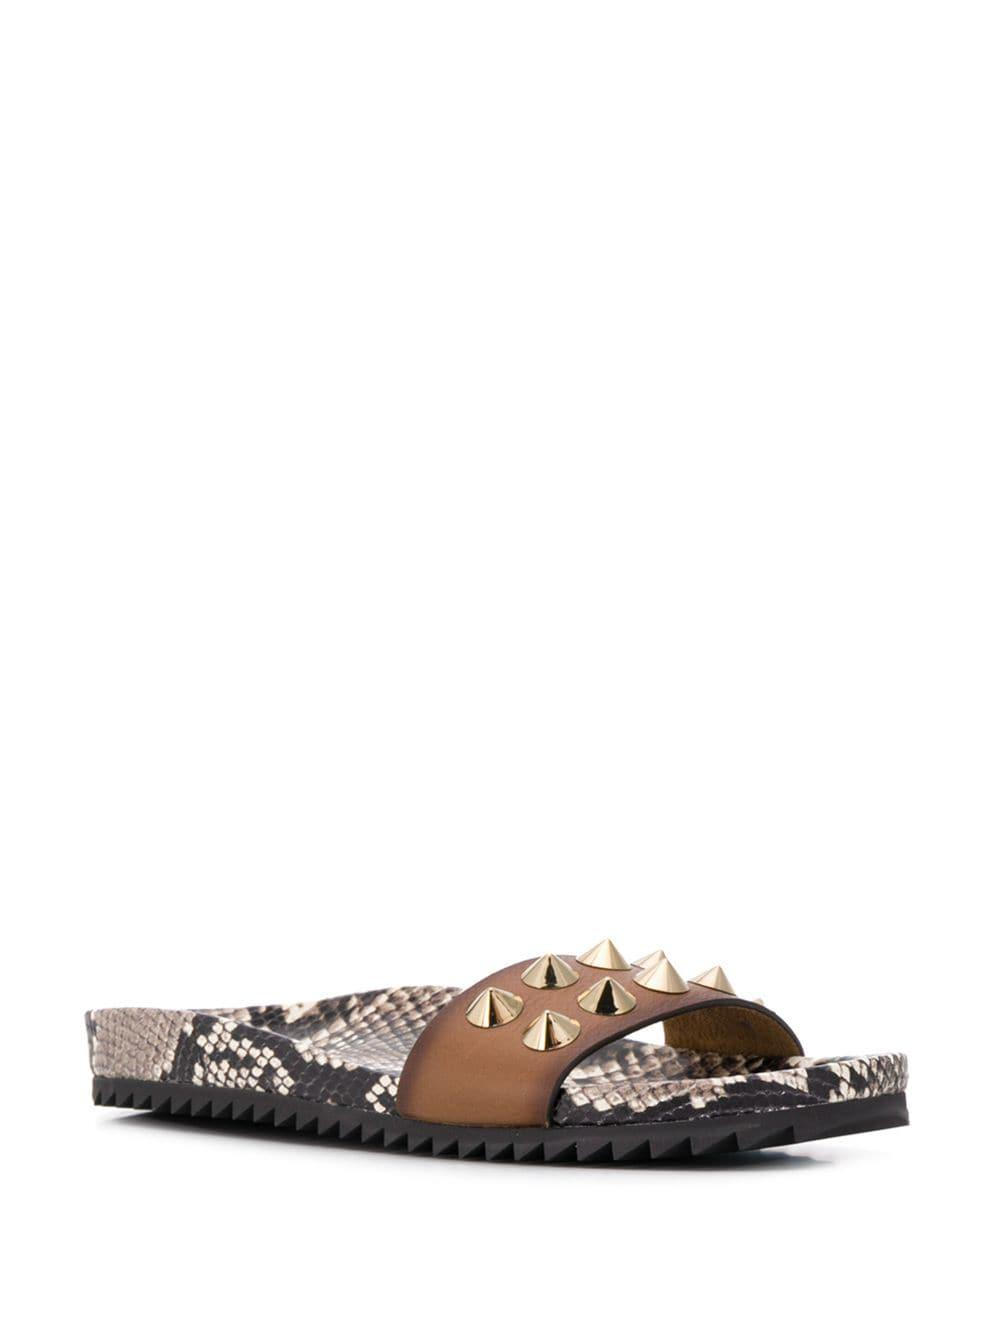 23031f39e Lyst - Pedro Garcia Areta Sandals in Brown